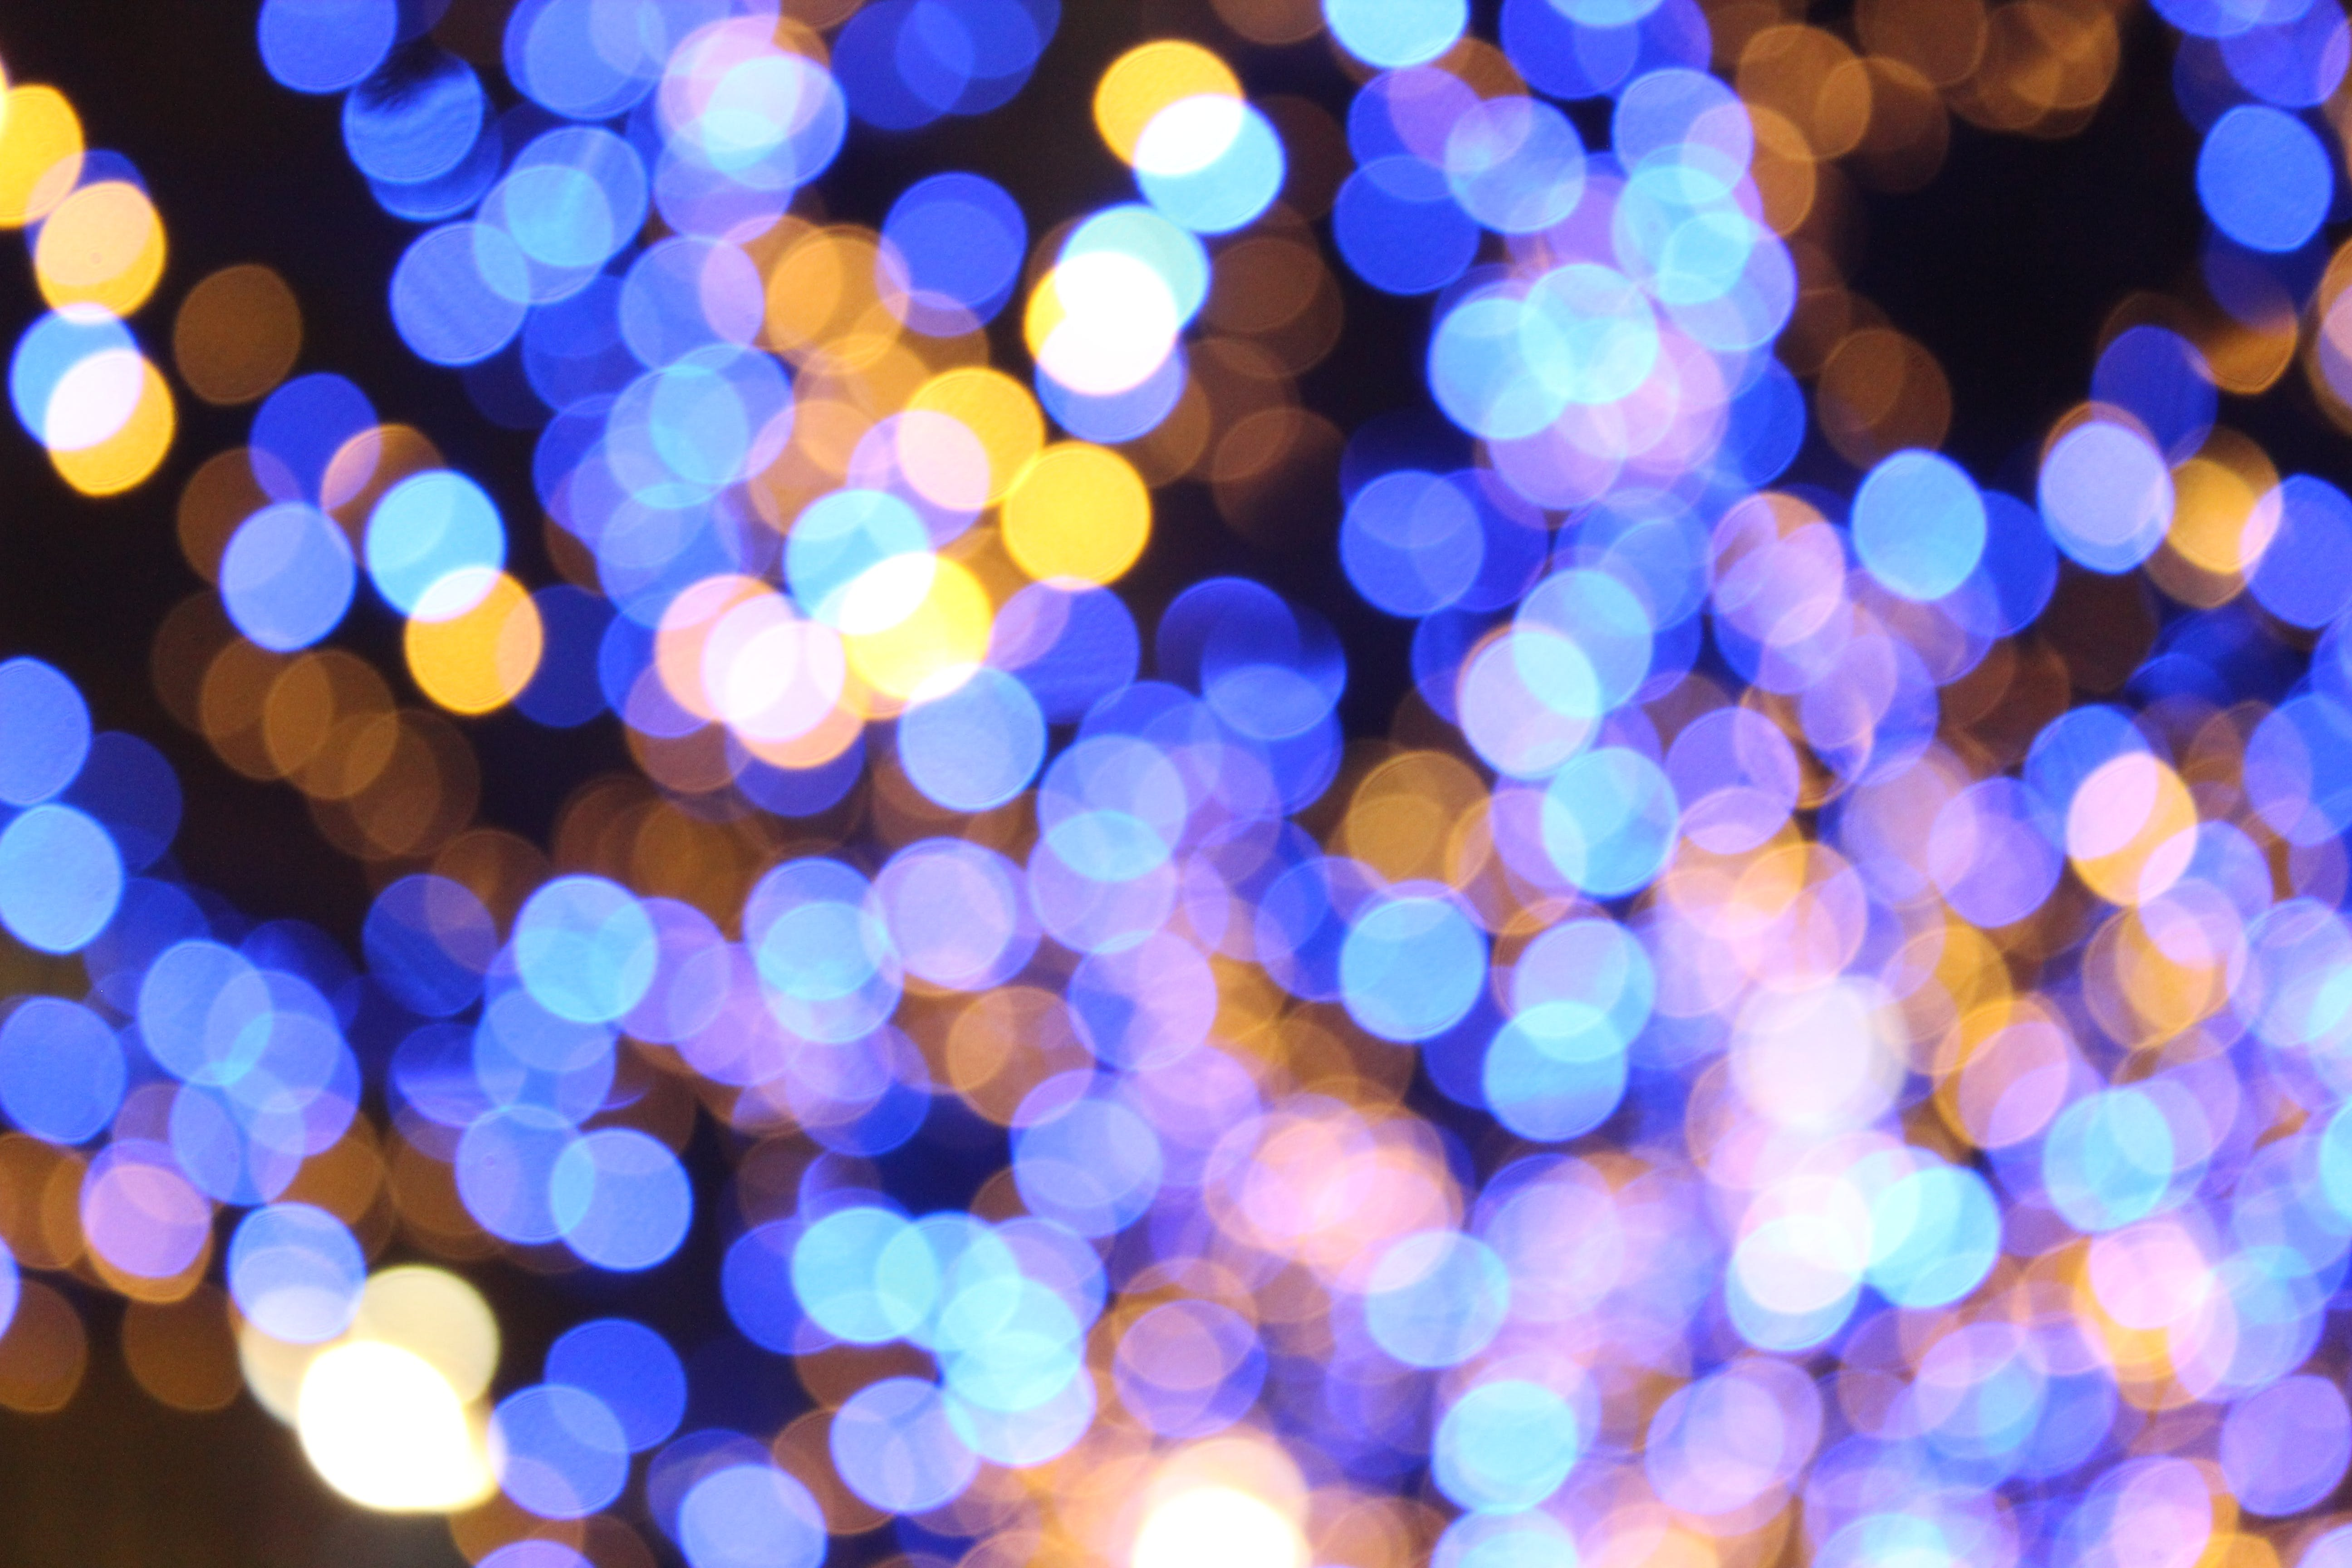 Bokeh Photography during Nighttime